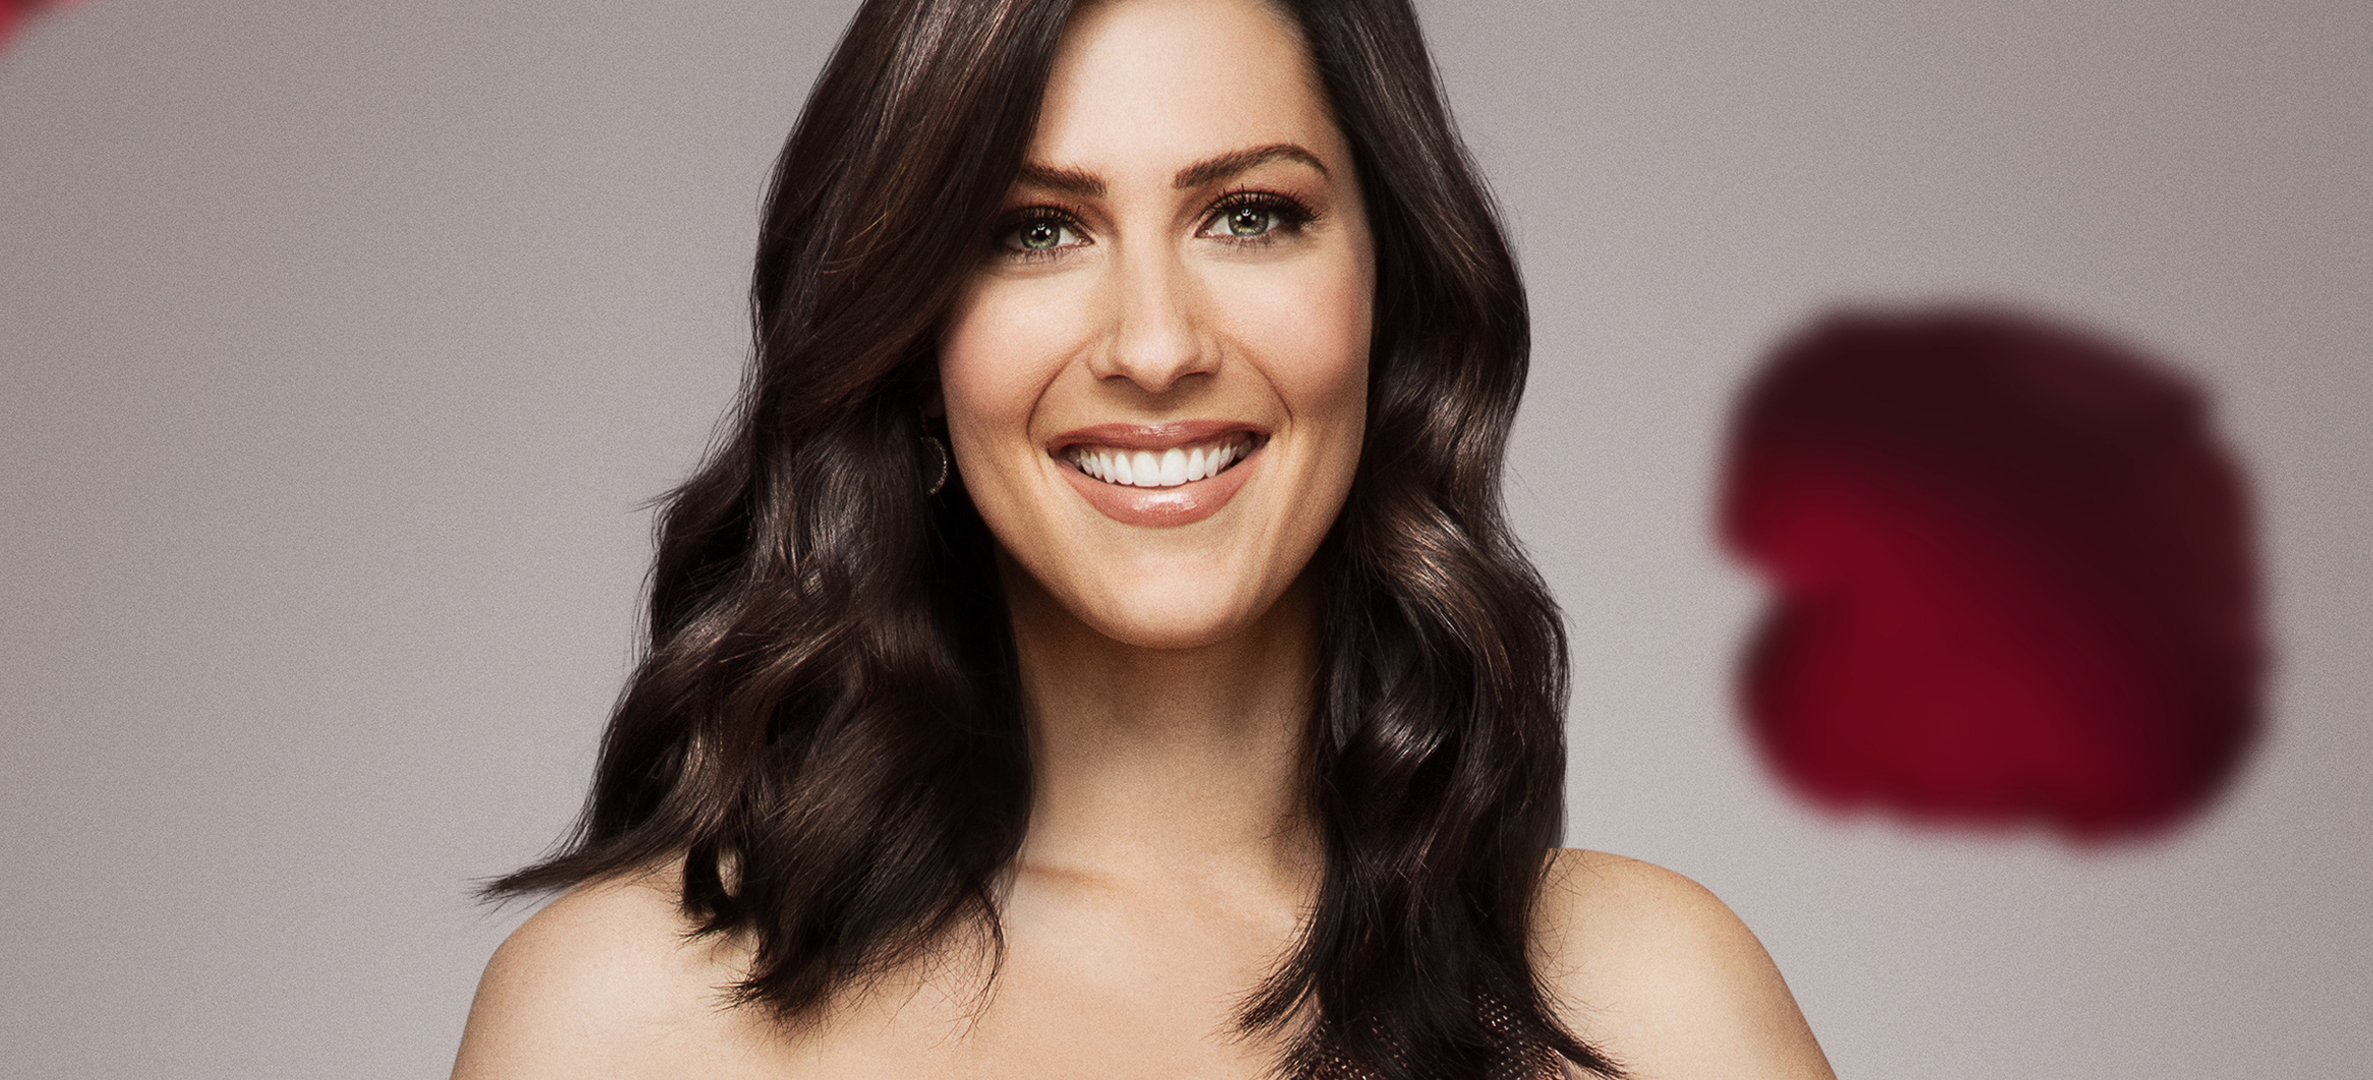 becca kufrin premieres as The Bachelorette on May 28